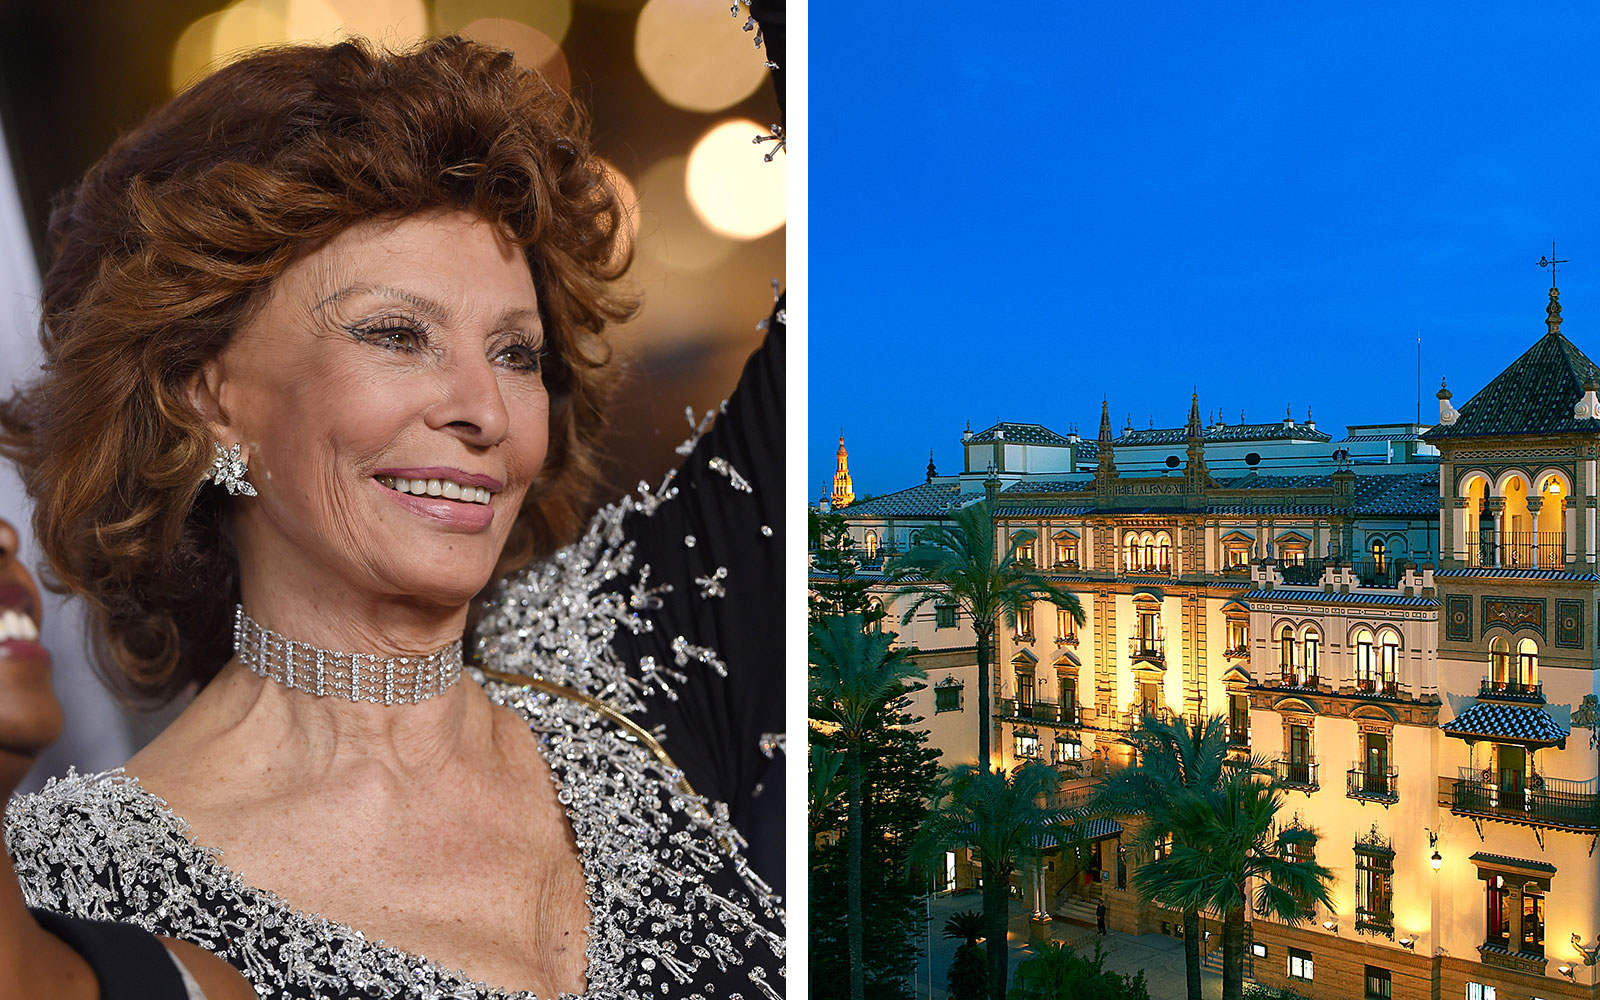 Hotels for Celebrity Sightings: Hotel Alfonso XIII, Seville, Spain